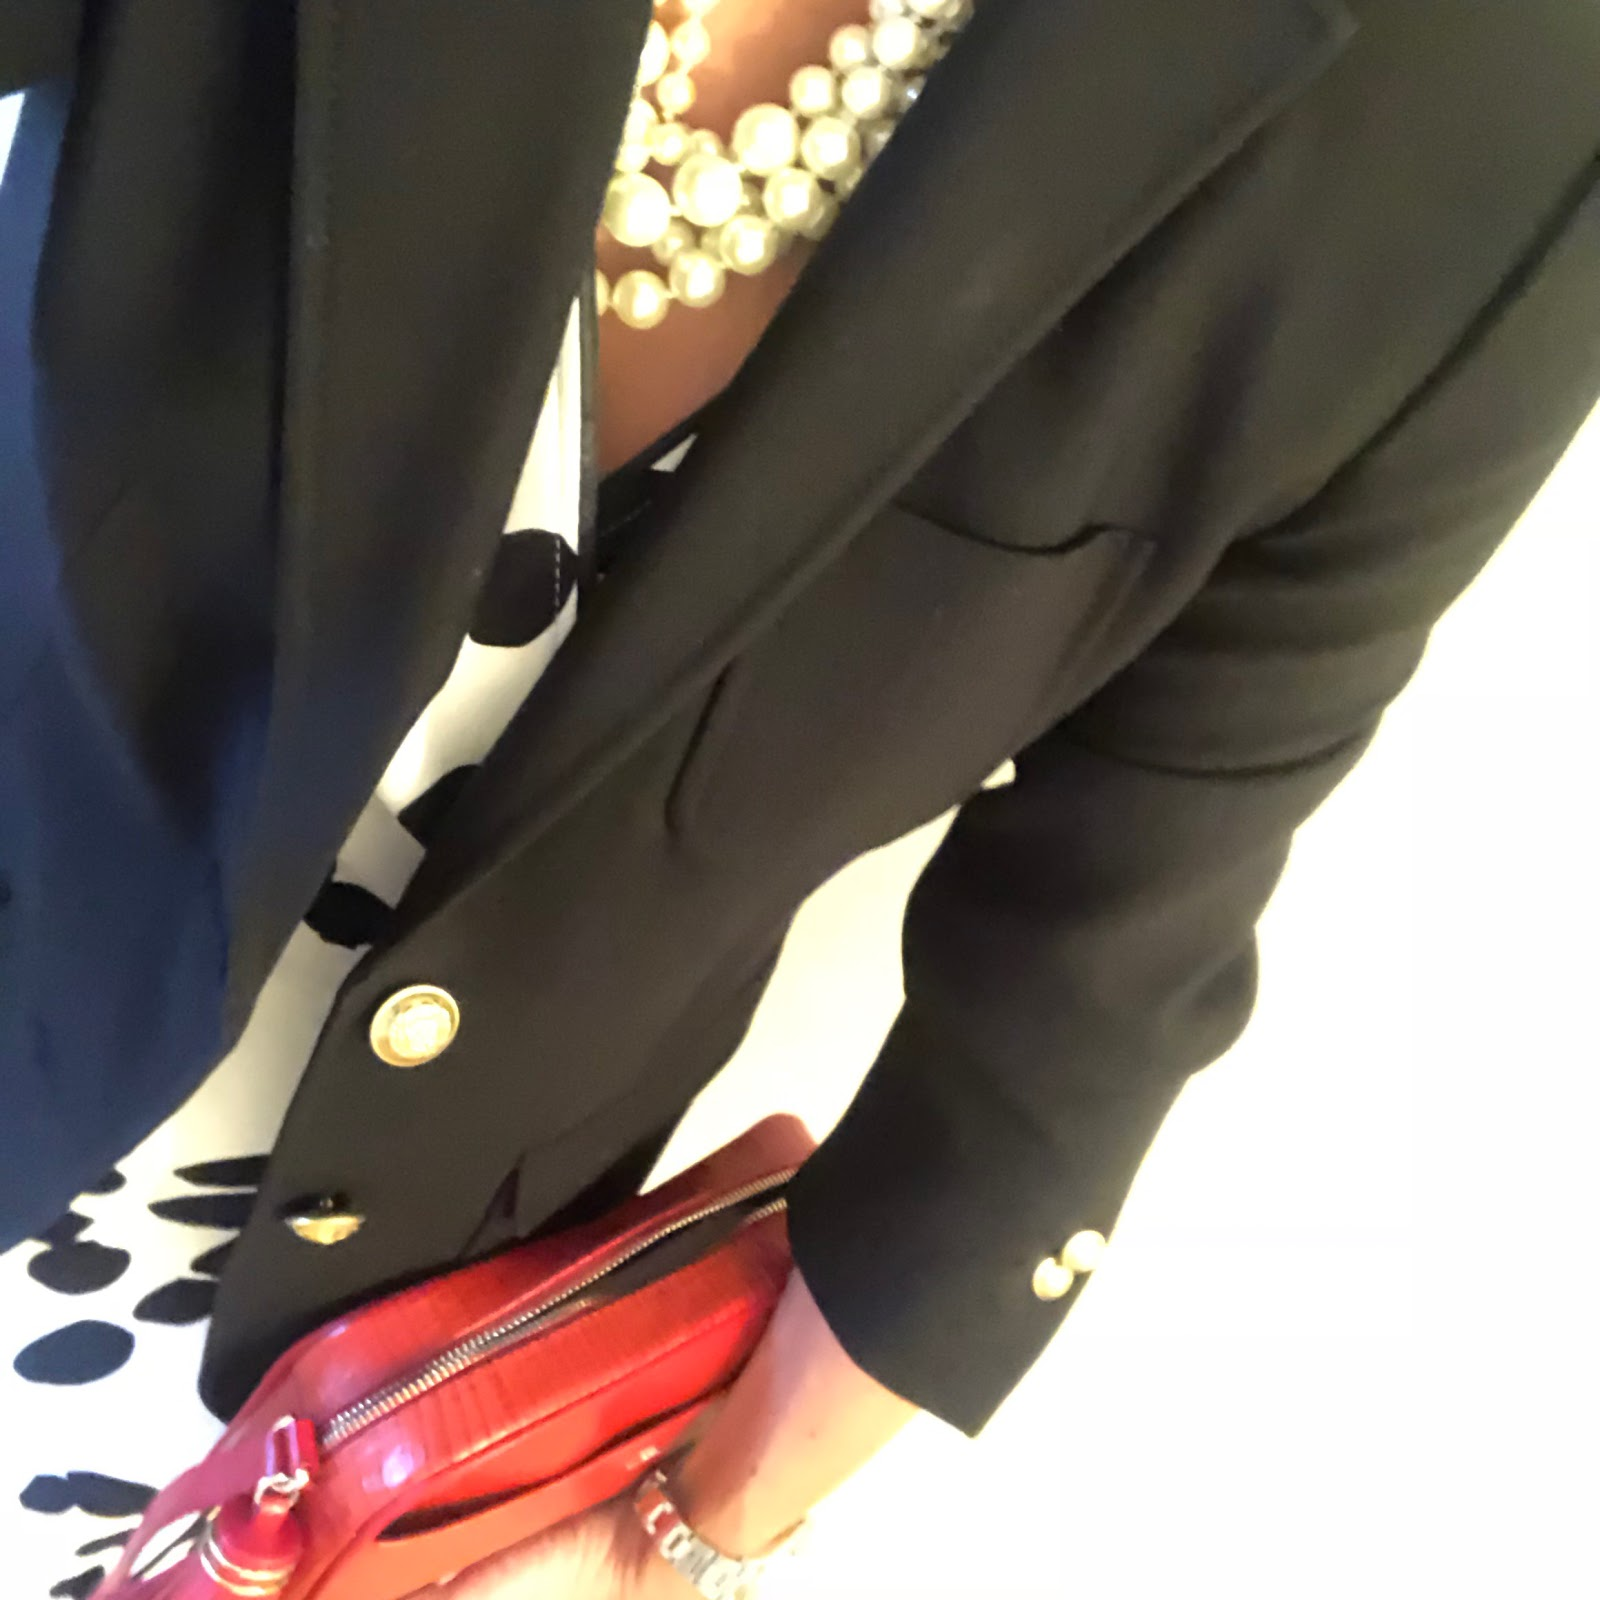 my midlife fashion, j crew rhodes blazer, uterque mock croc crossbody bag, j crew twisted hammock pearl necklace, french sole india ballet pumps, marion murphy cooney monochrome maxi wrap dress